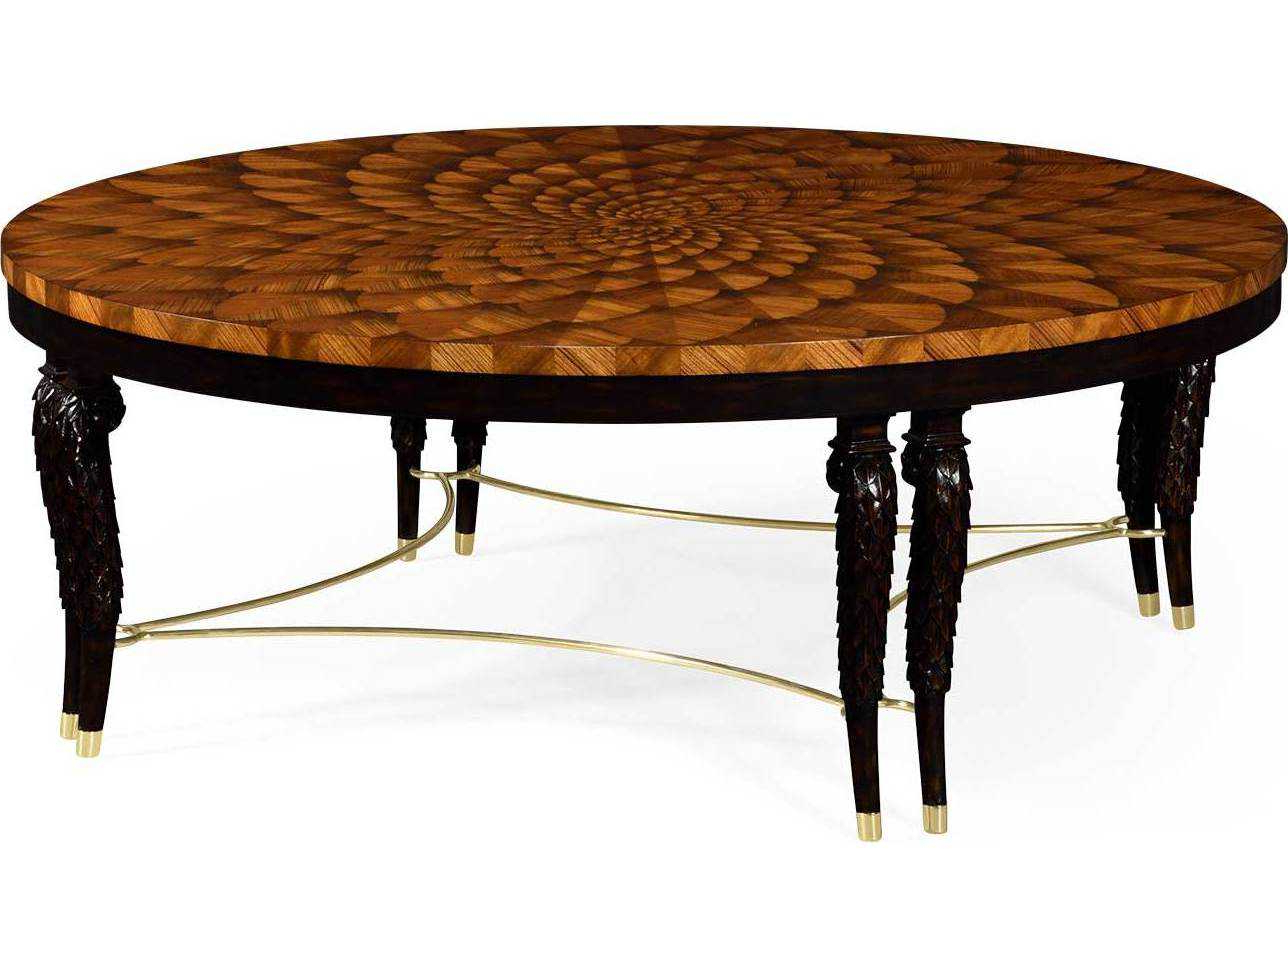 Jonathan Charles Icarus Medium Zebrano Feather Inlay Hand Carved Coffee  Table With Brass Stretcher Throughout Most Recently Released Icarus Round Bar Tables (View 16 of 25)